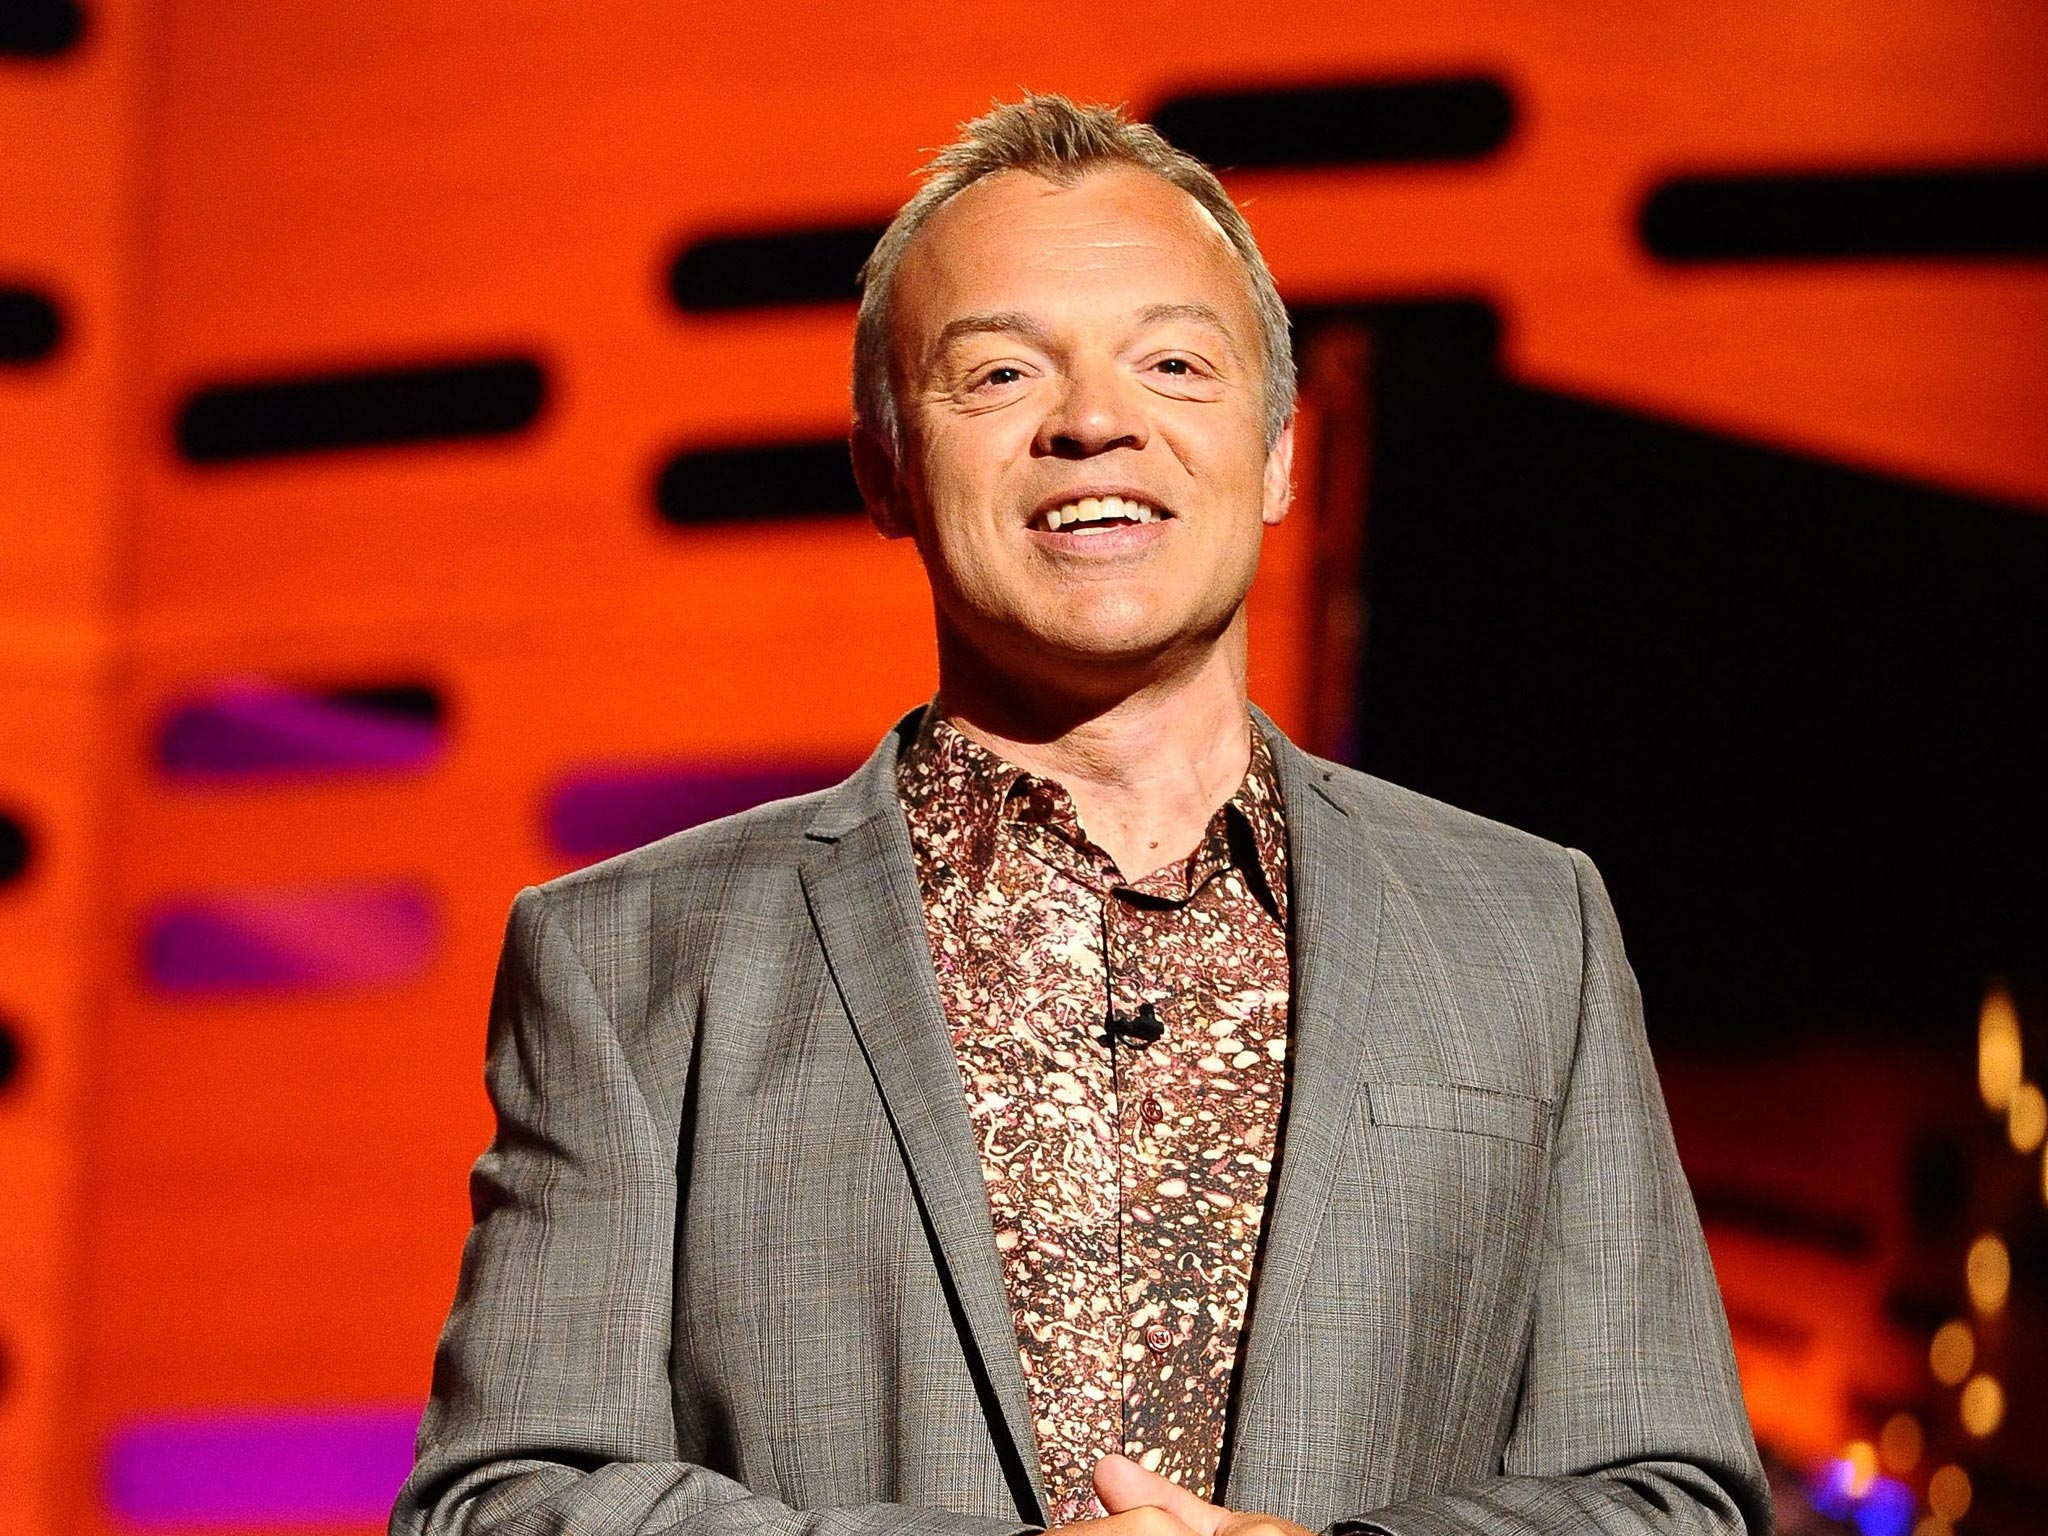 Cleaning ladies mrs overall on the graham norton show this week and - Bbc Cuts Talent Costs But Faces An Exodus Of Star Presenters Report Warns The Independent